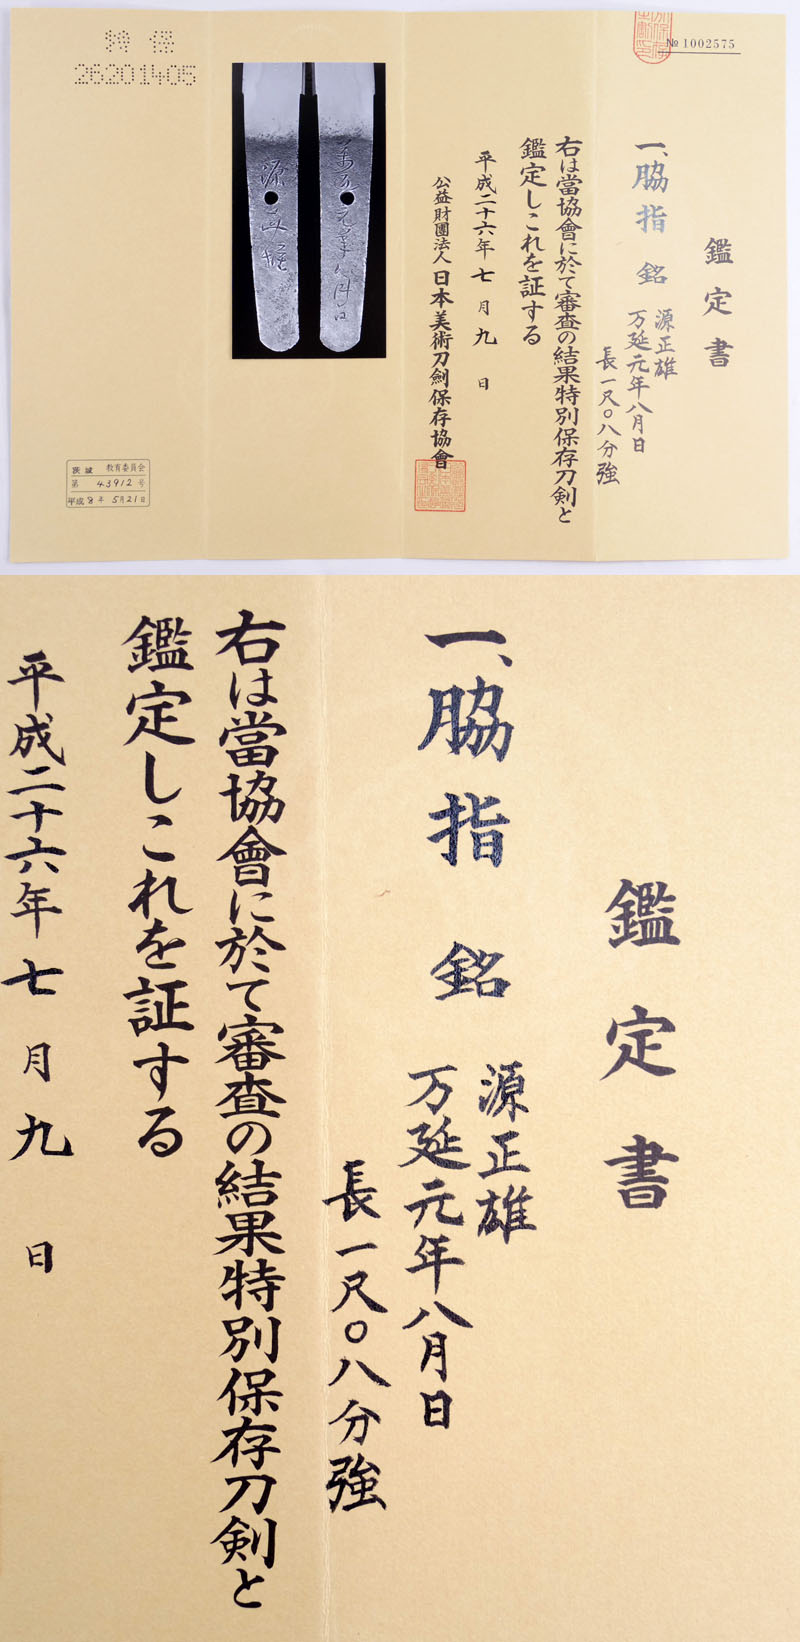 源正雄 (鈴木次郎)  Picture of Certificate